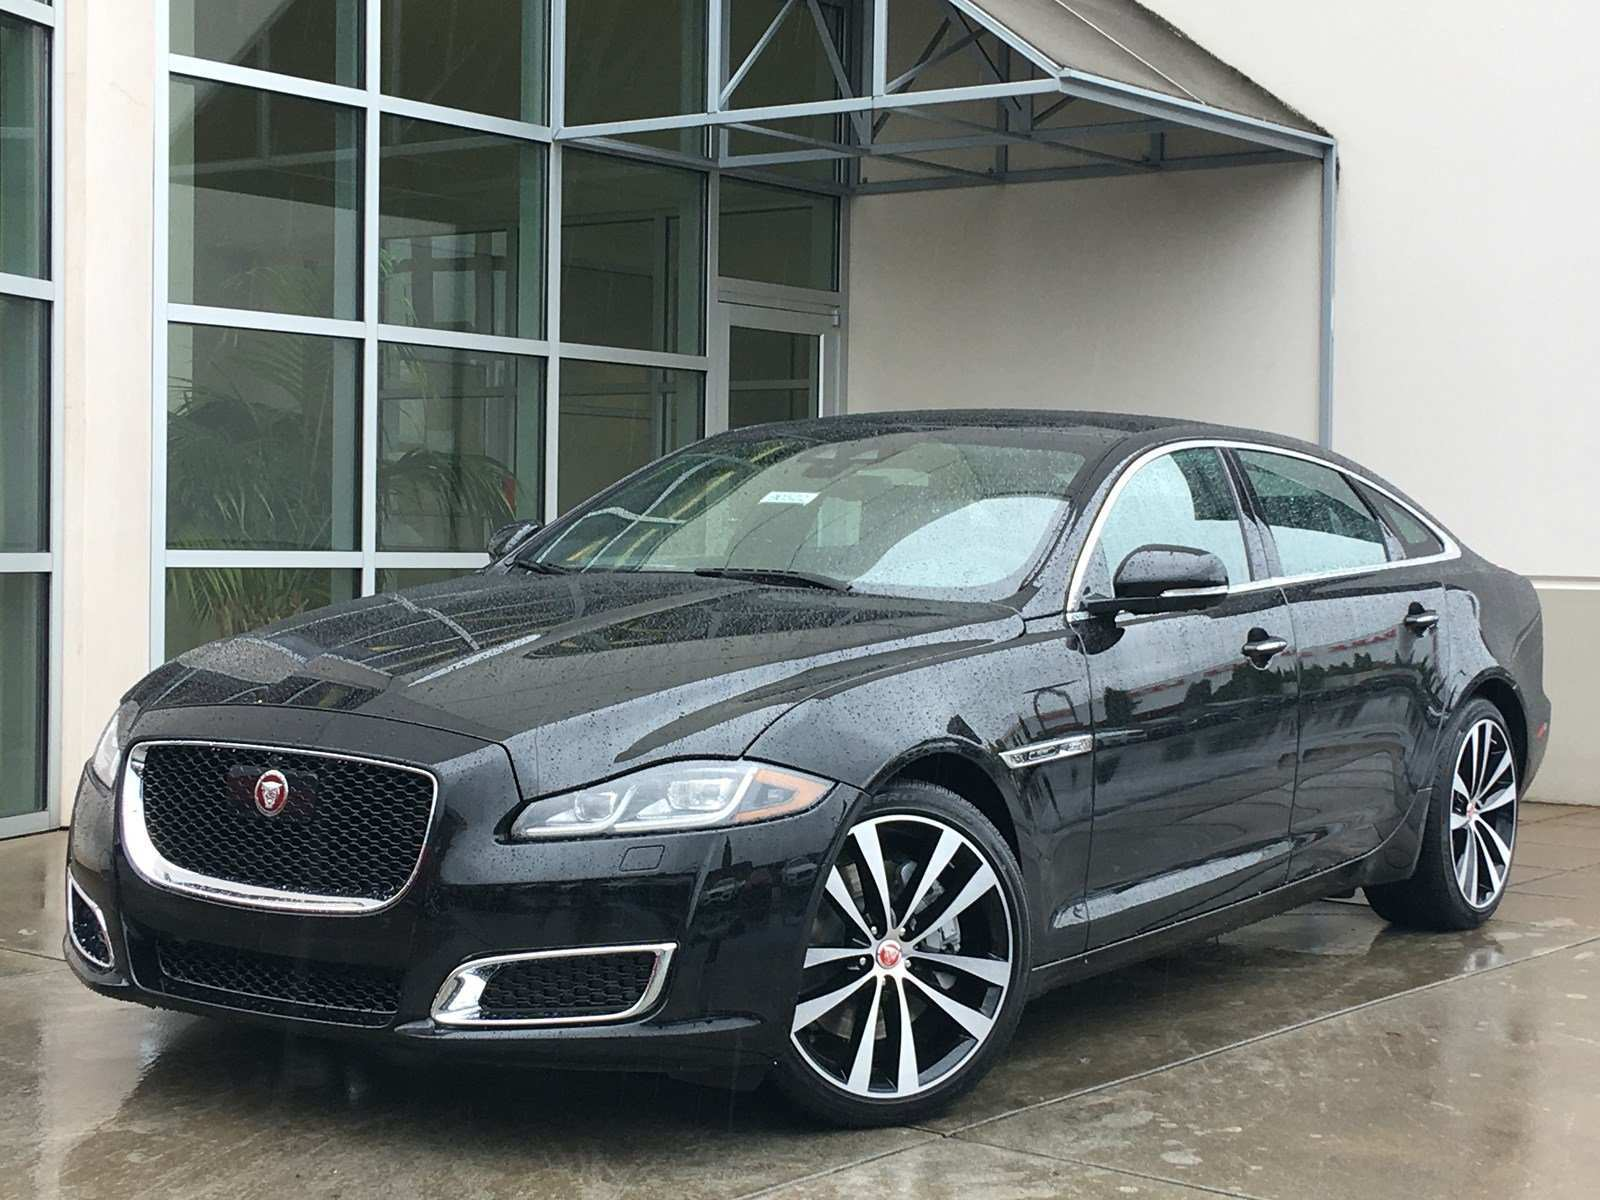 81 New 2019 Jaguar Xj Rumors for 2019 Jaguar Xj